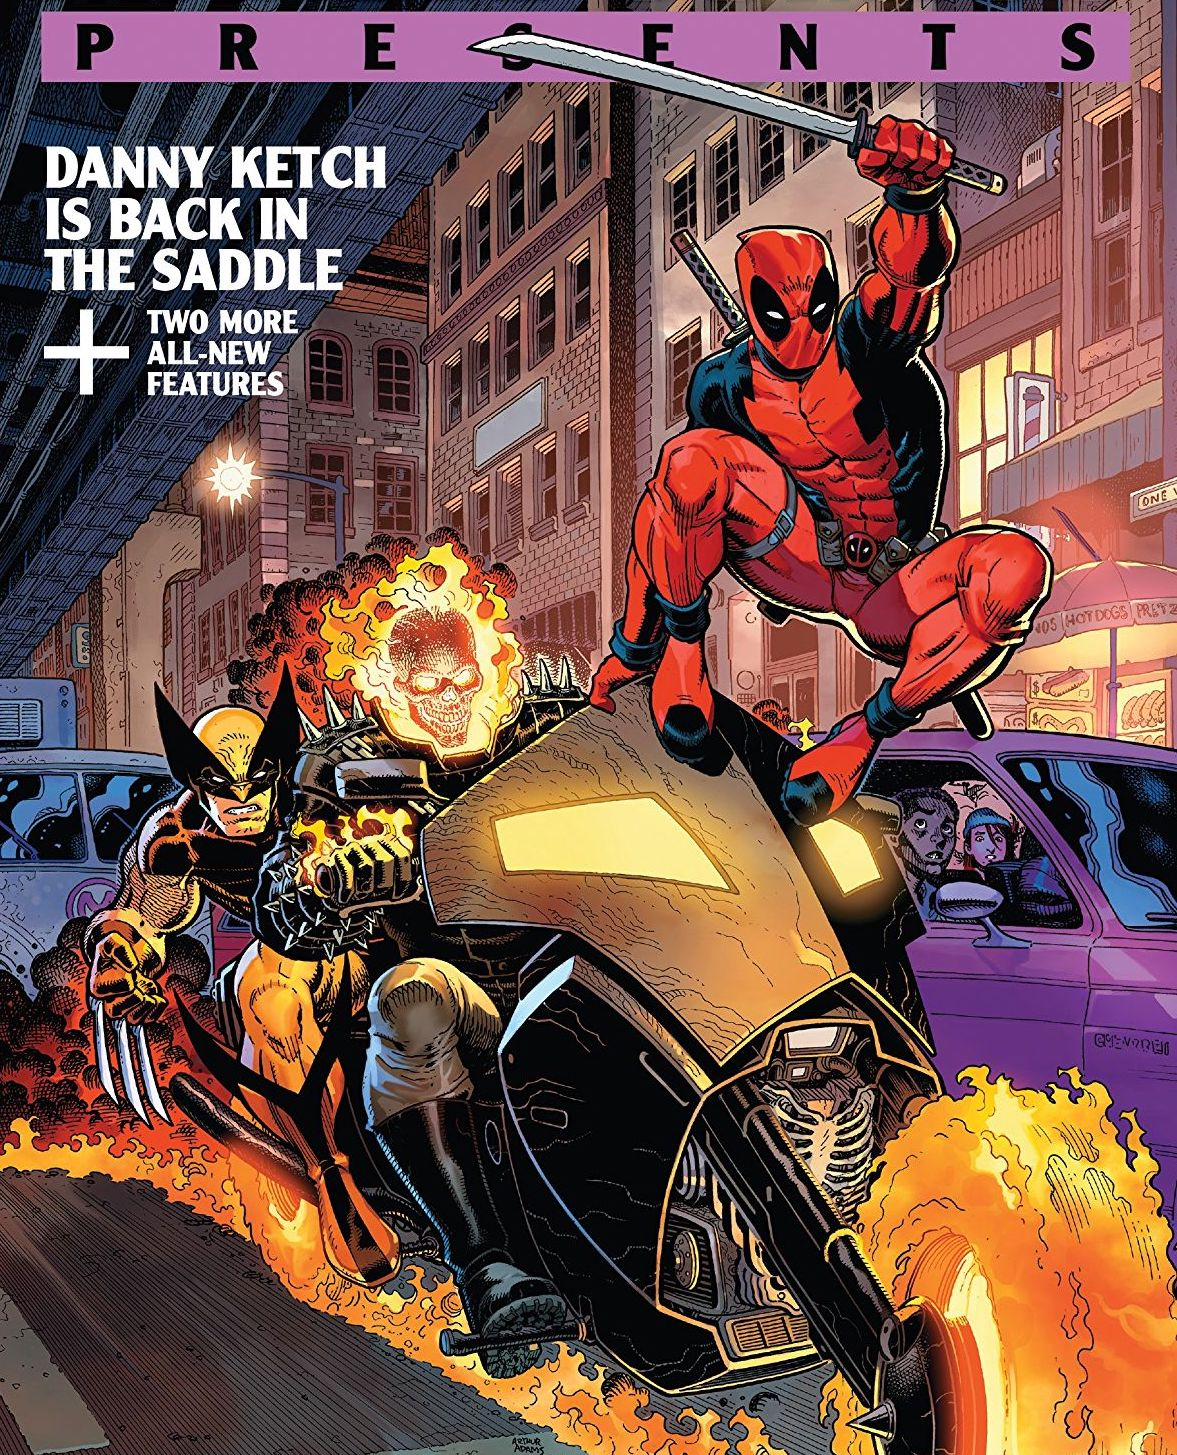 Marvel Comics Presents #6 review: Riding into the '90s with Wolverine, Deadpool and Ghost Rider